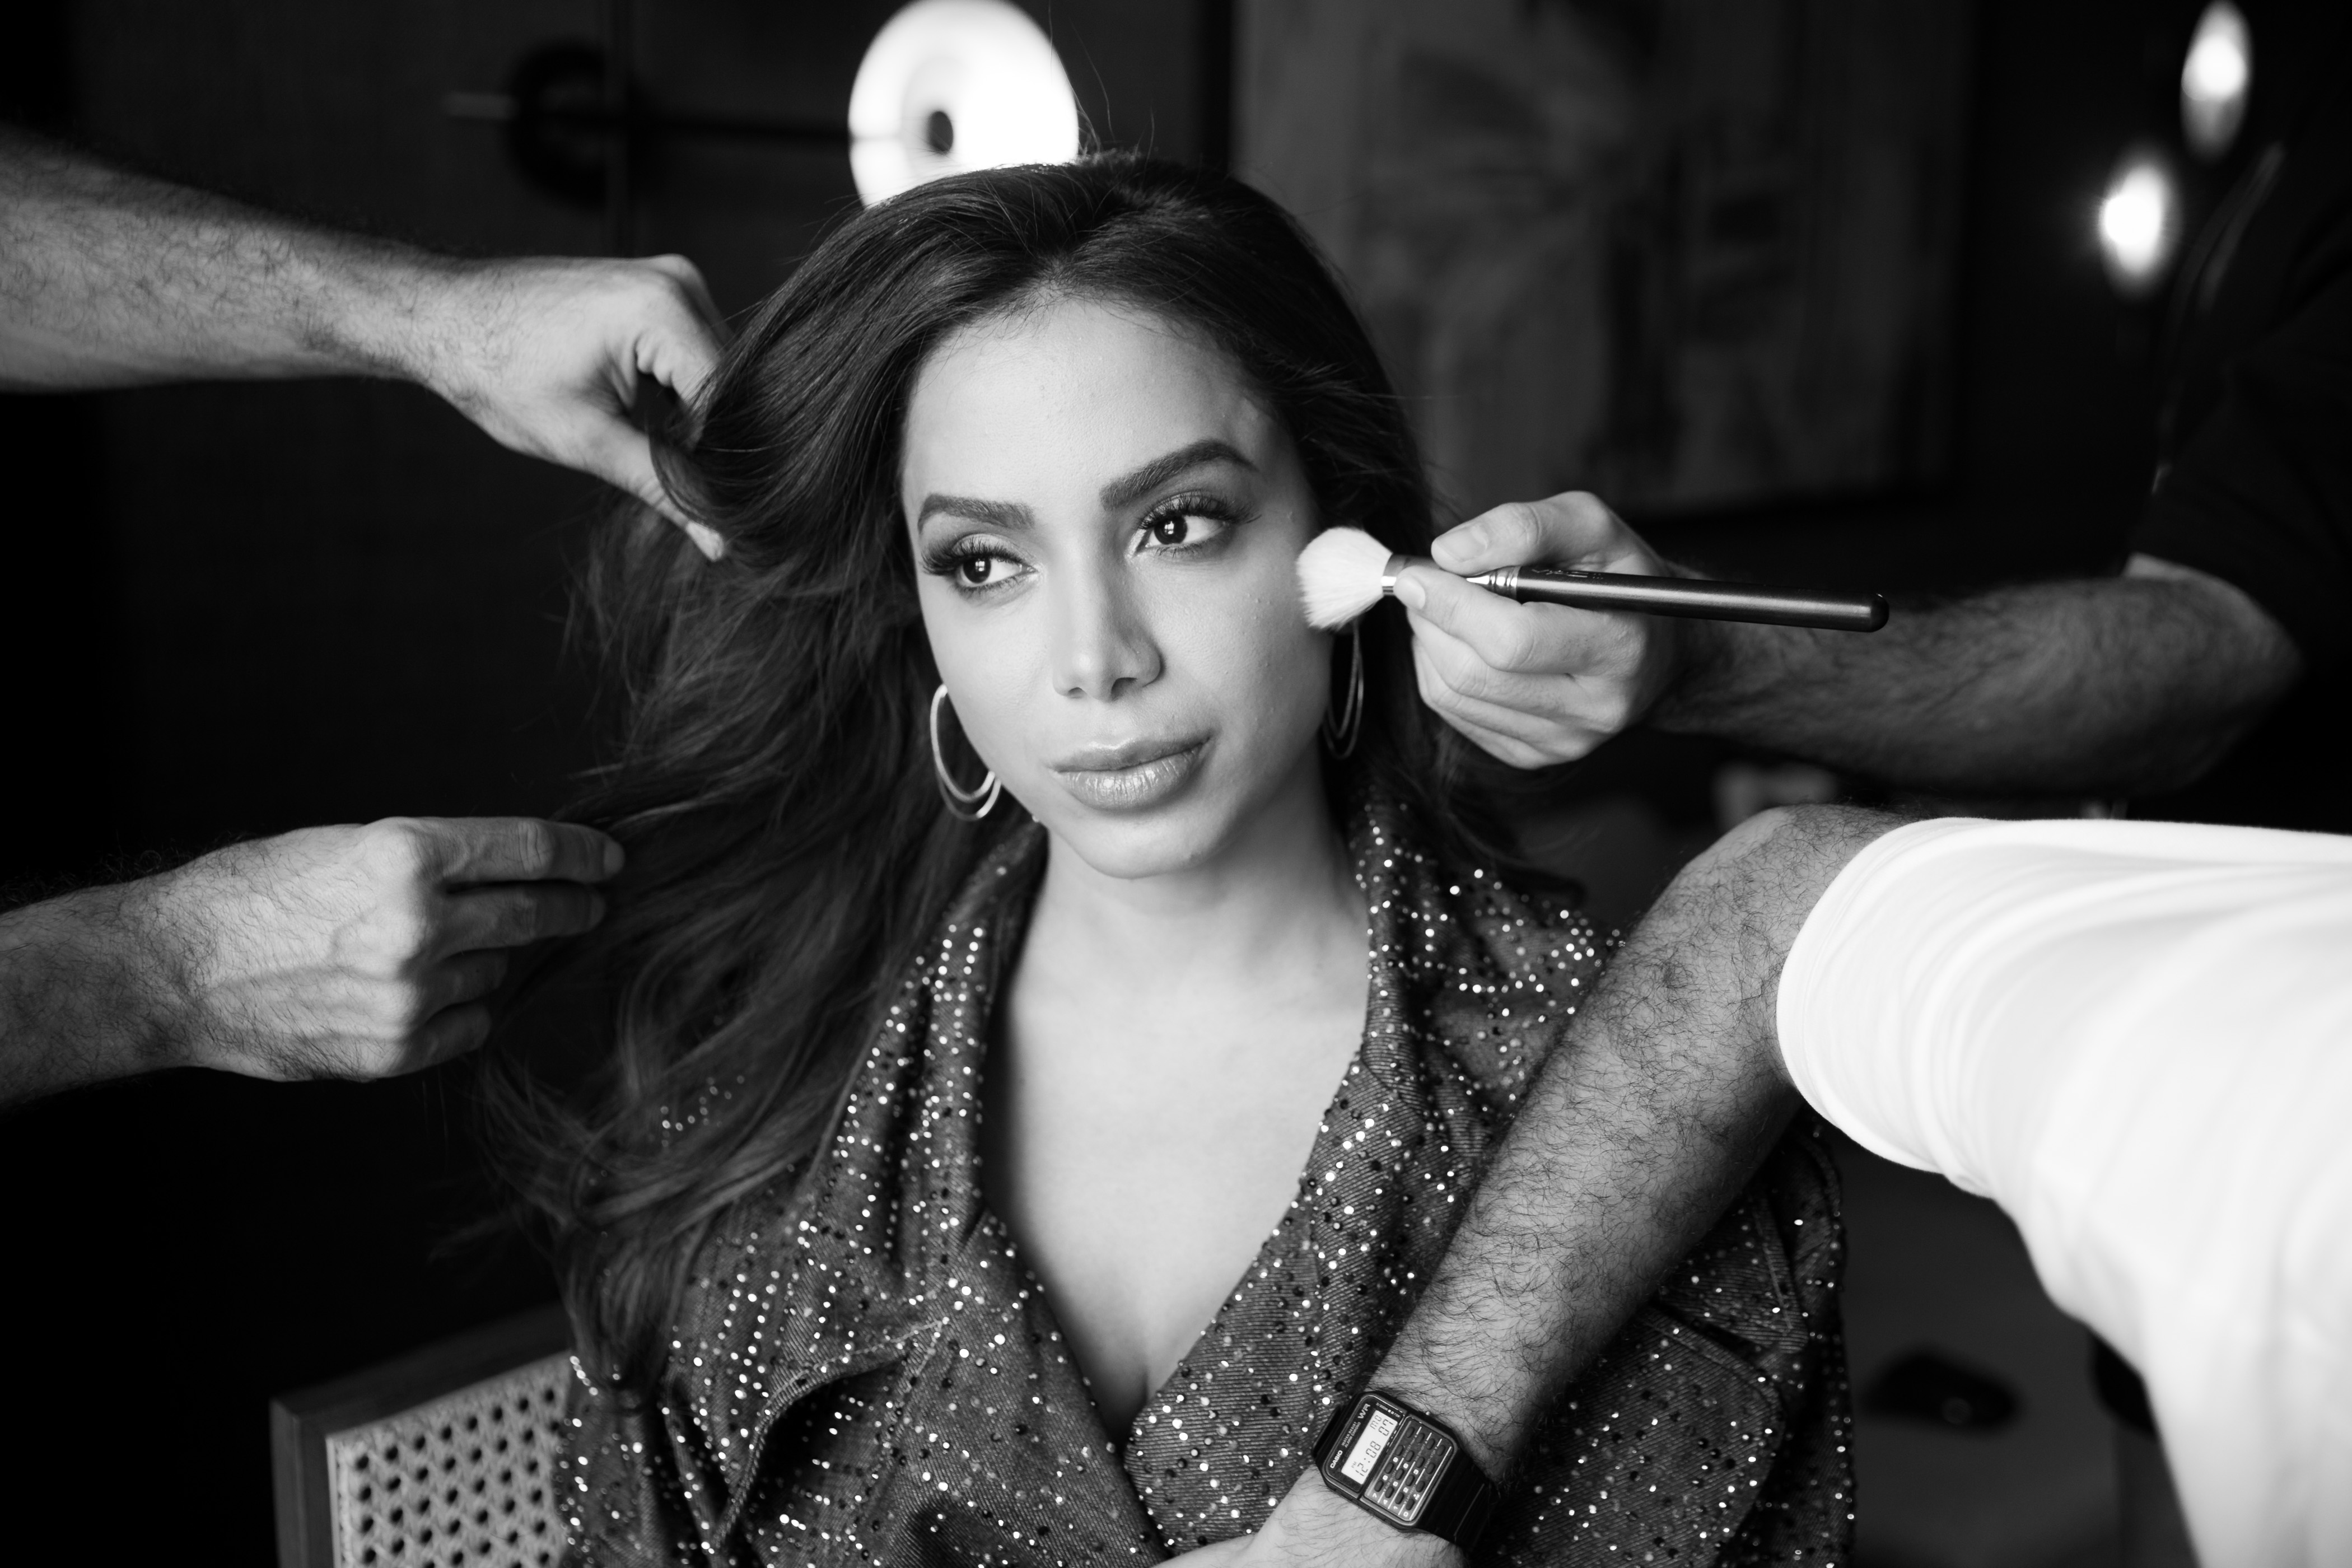 Brazilian singer Anitta having her hair and make-up done